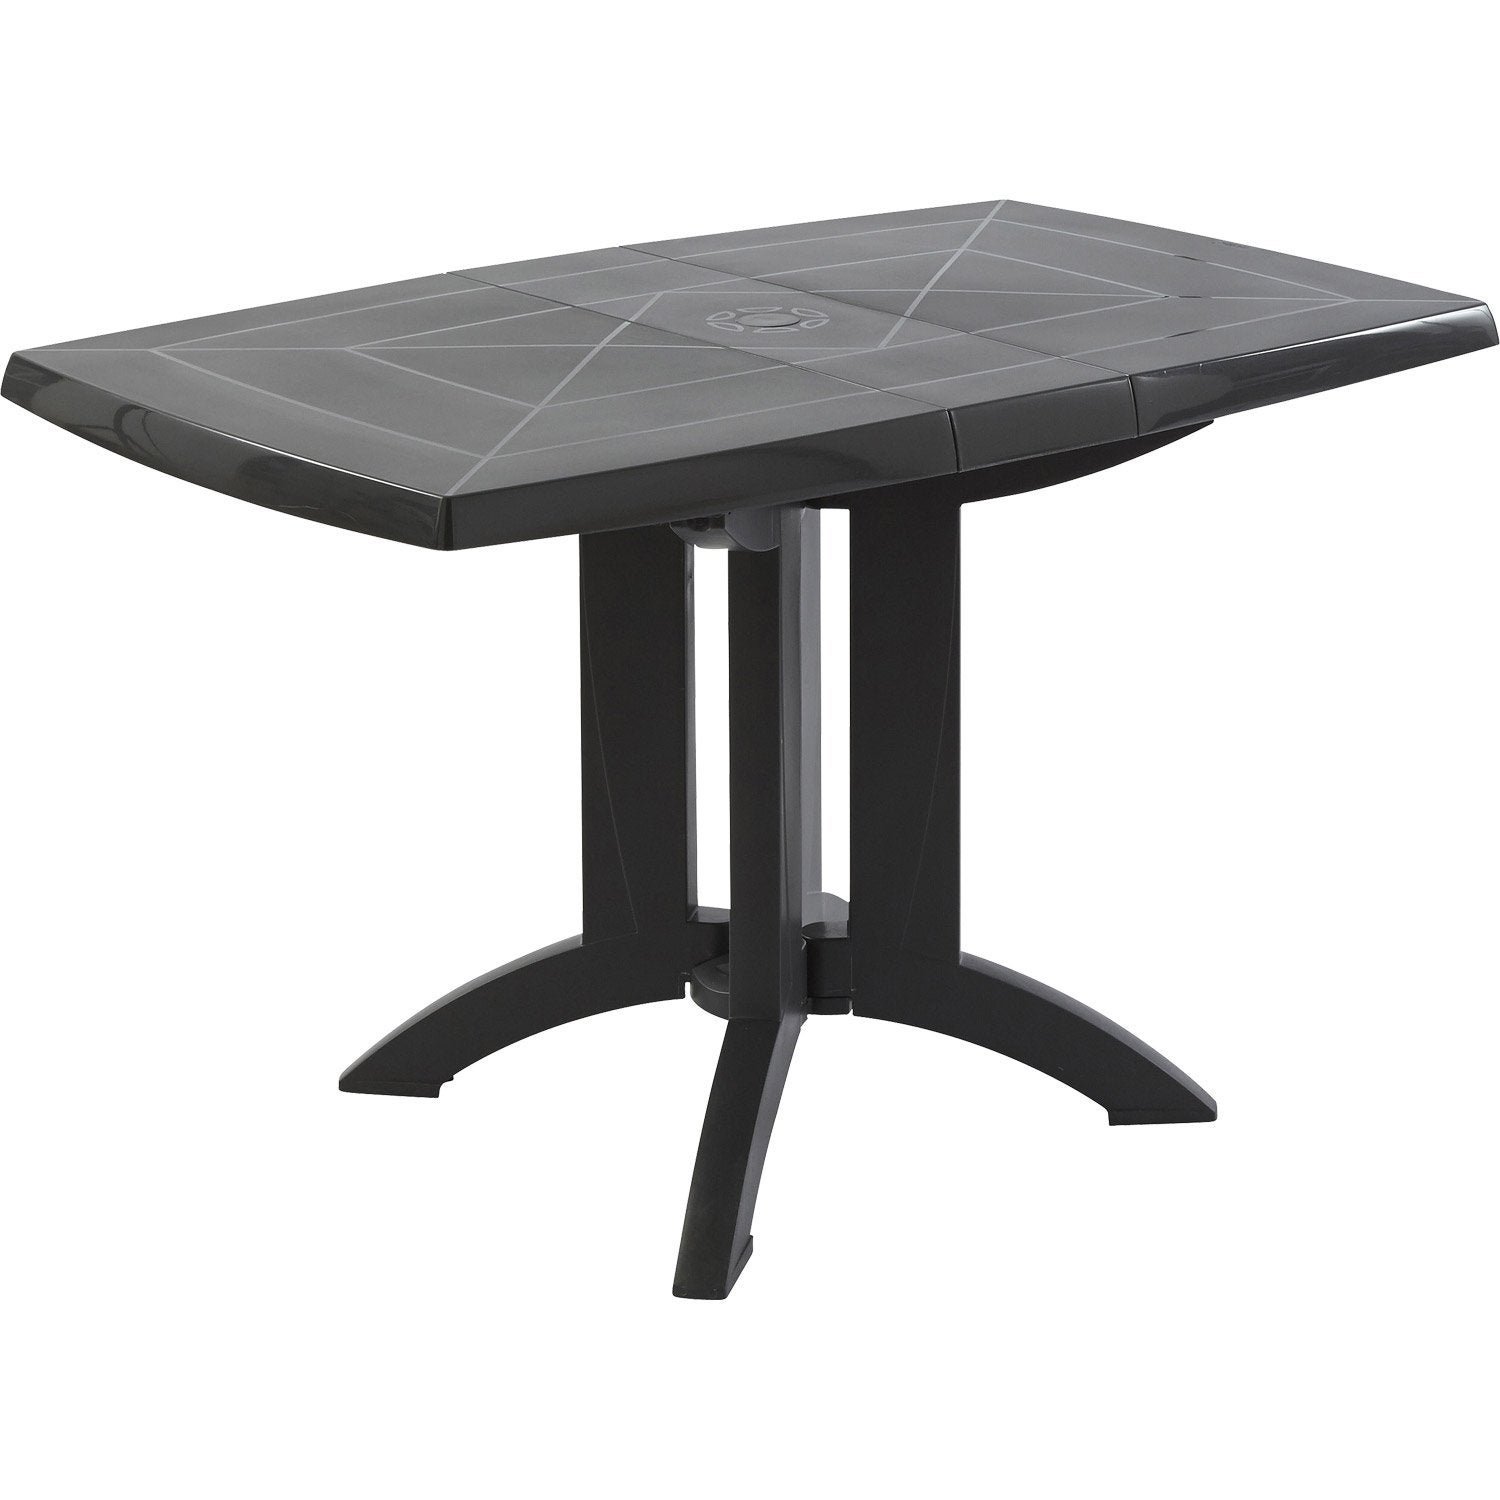 Table de jardin grosfillex v ga rectangulaire anthracite 4 for Table de terrasse pas cher